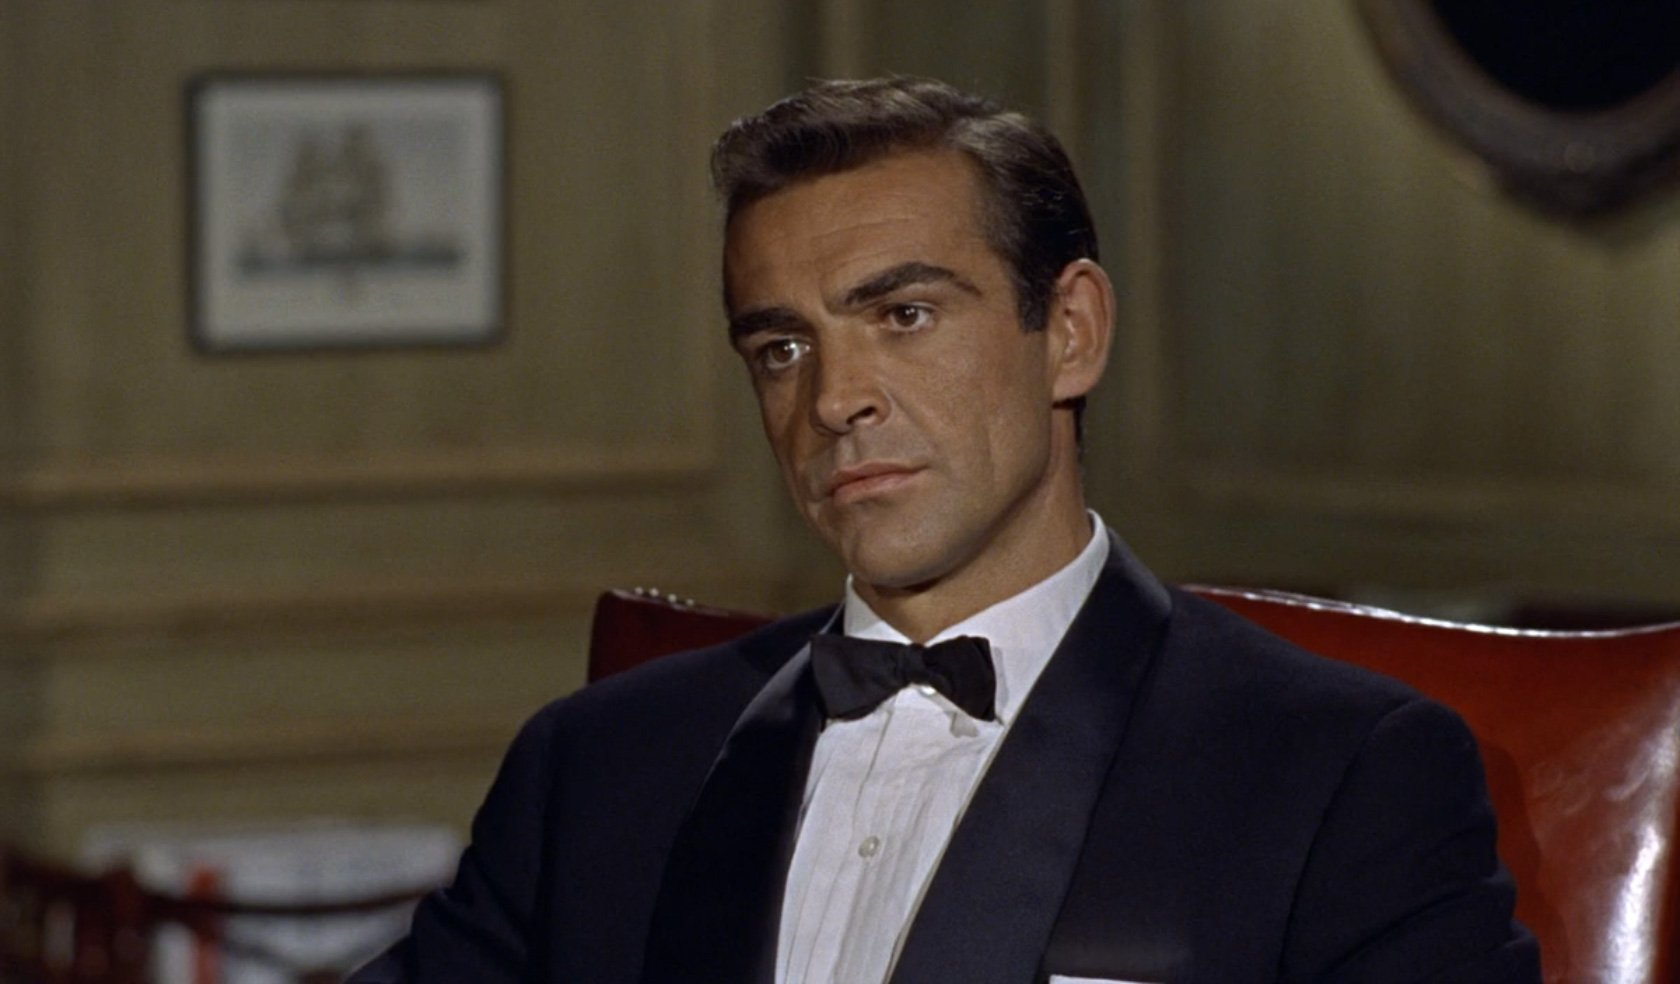 How To Wear Black Tie A Tuxedo Like James Bond The Suits